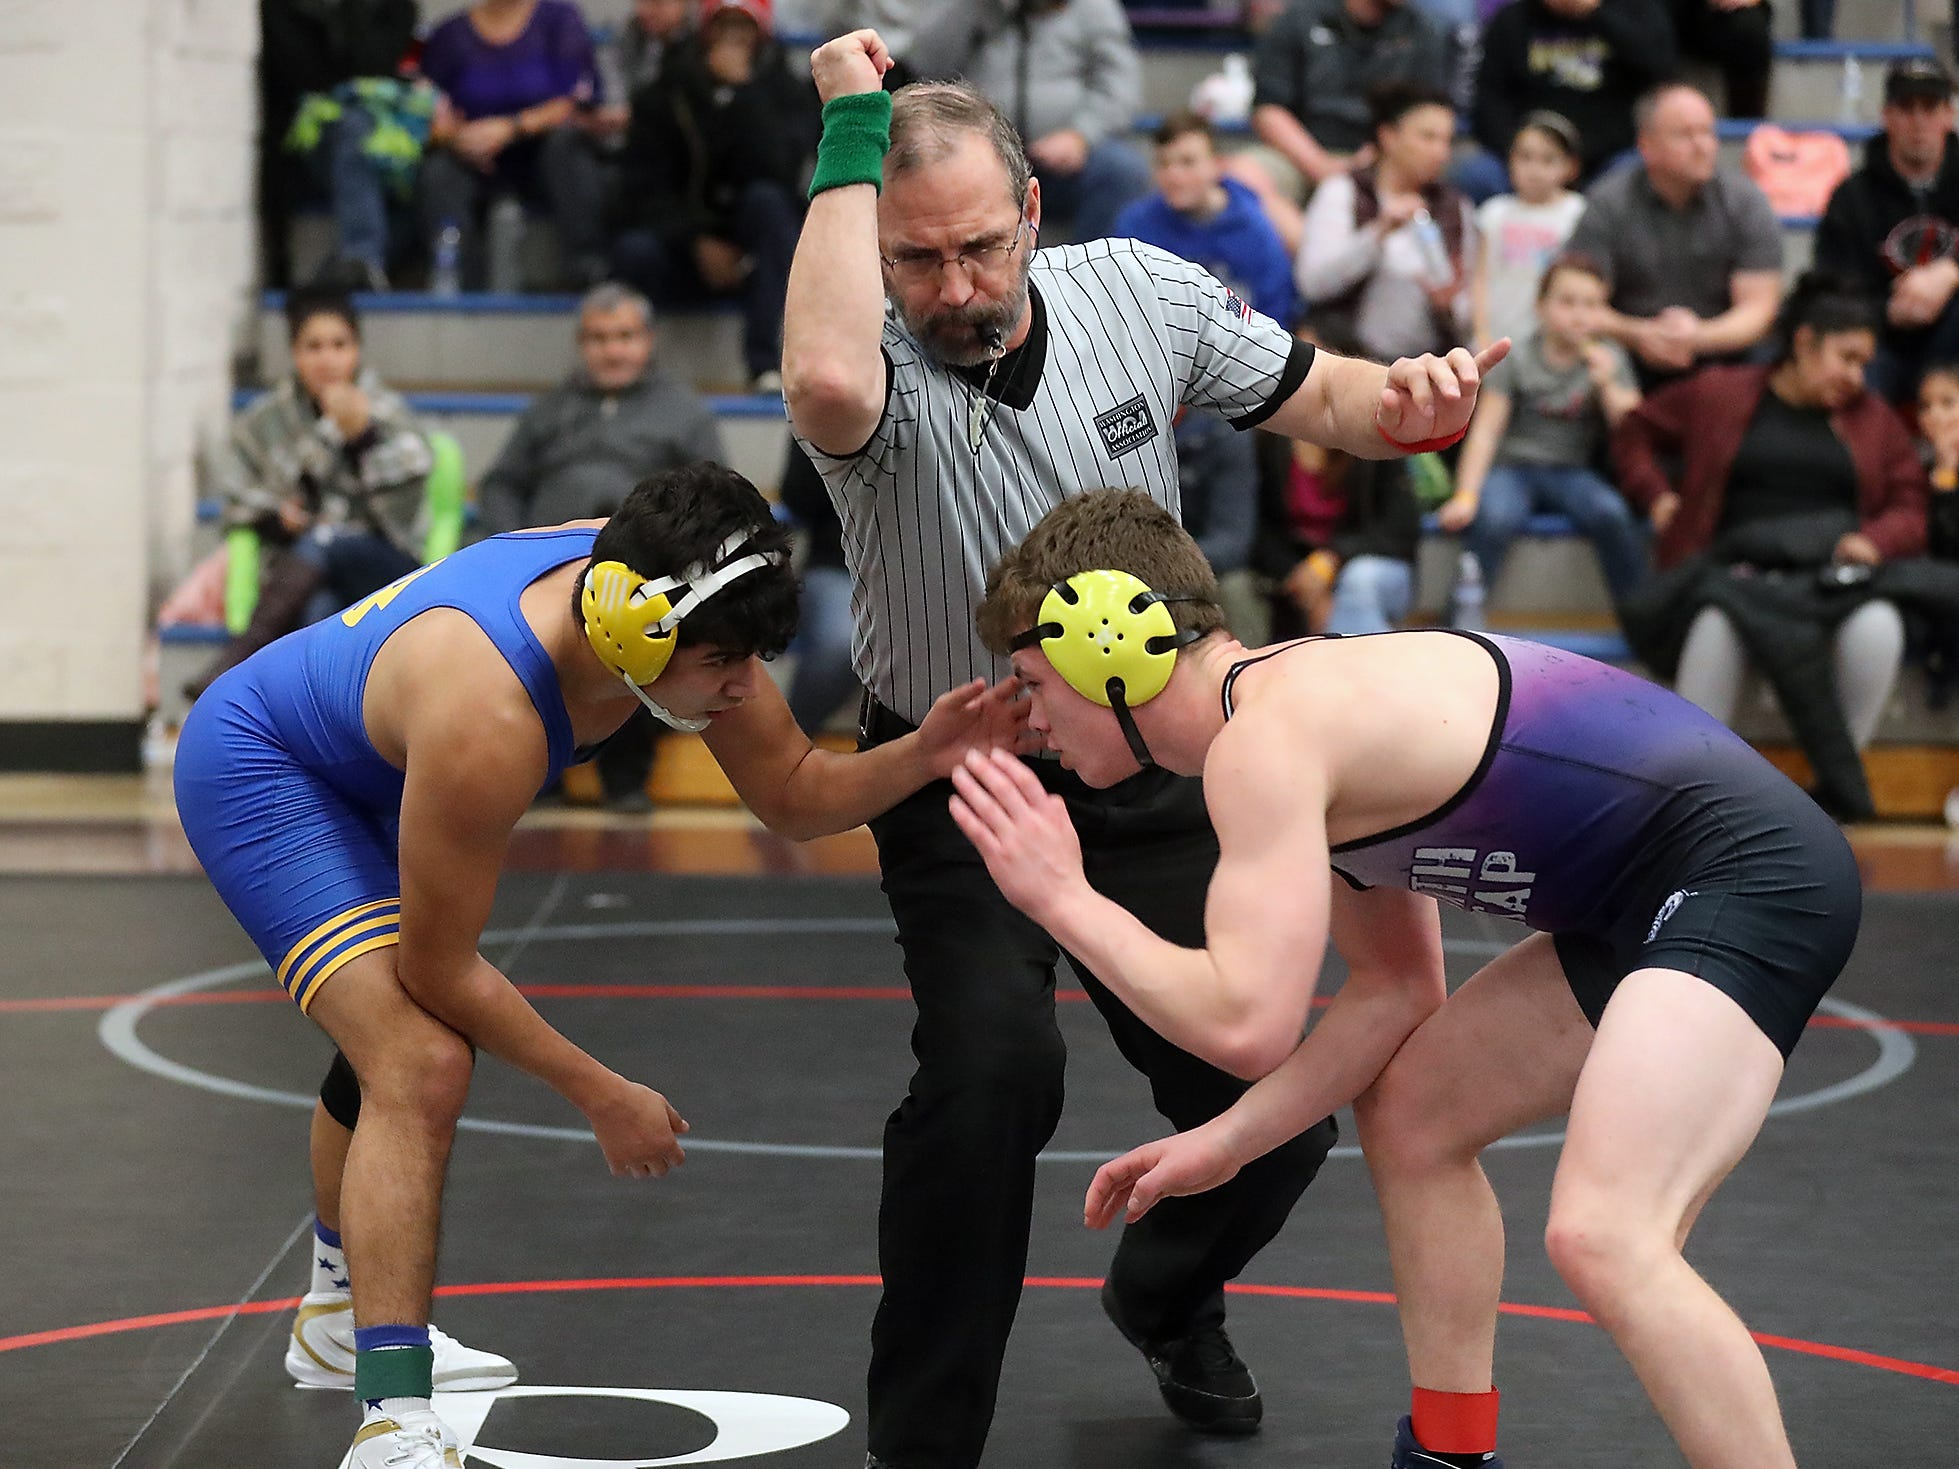 Olympic Duals at the Kitsap Sun Pavilion in Silverdale on Saturday, December 8, 2018.